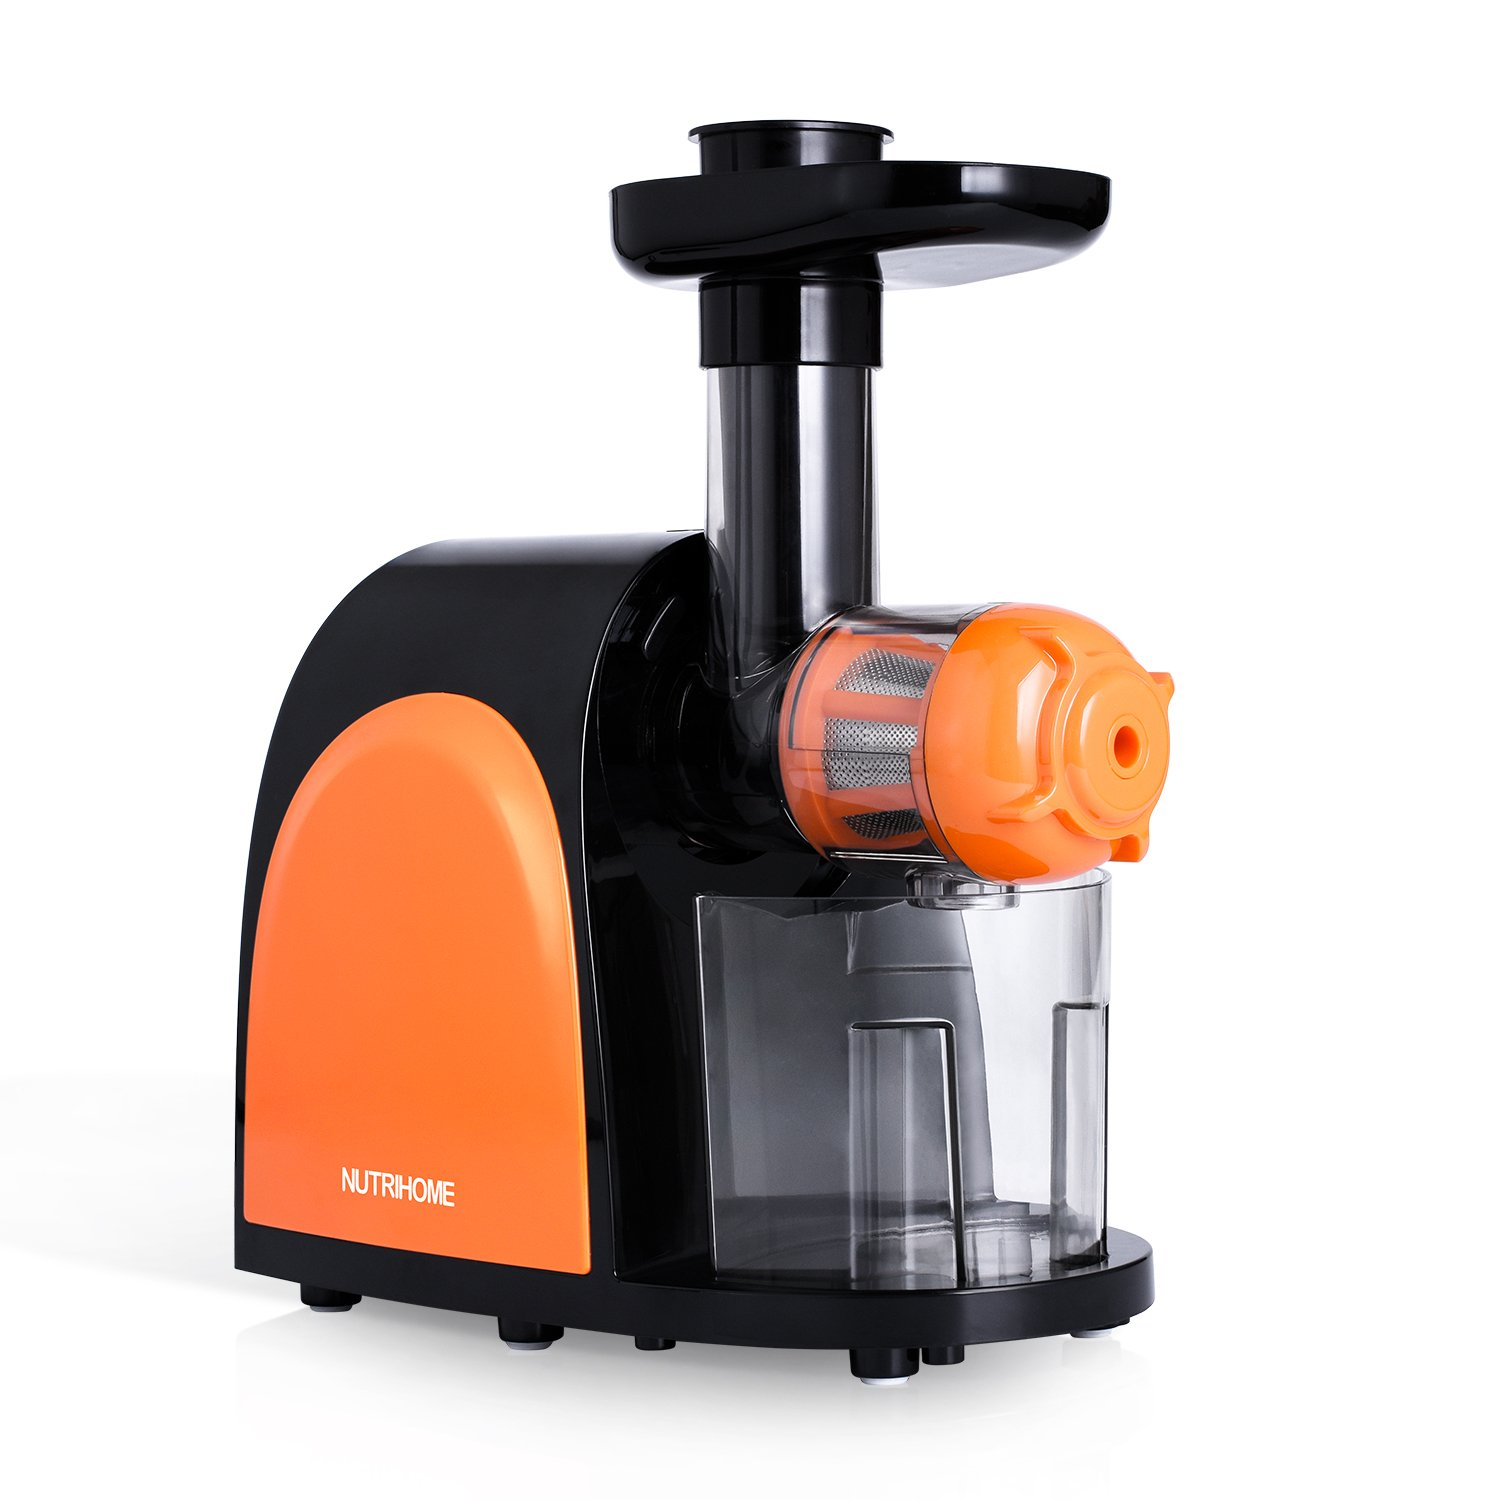 Best Masticating Juicer For Vegetables : Best Masticating Juicer 2018, Reviews and Buying Guide